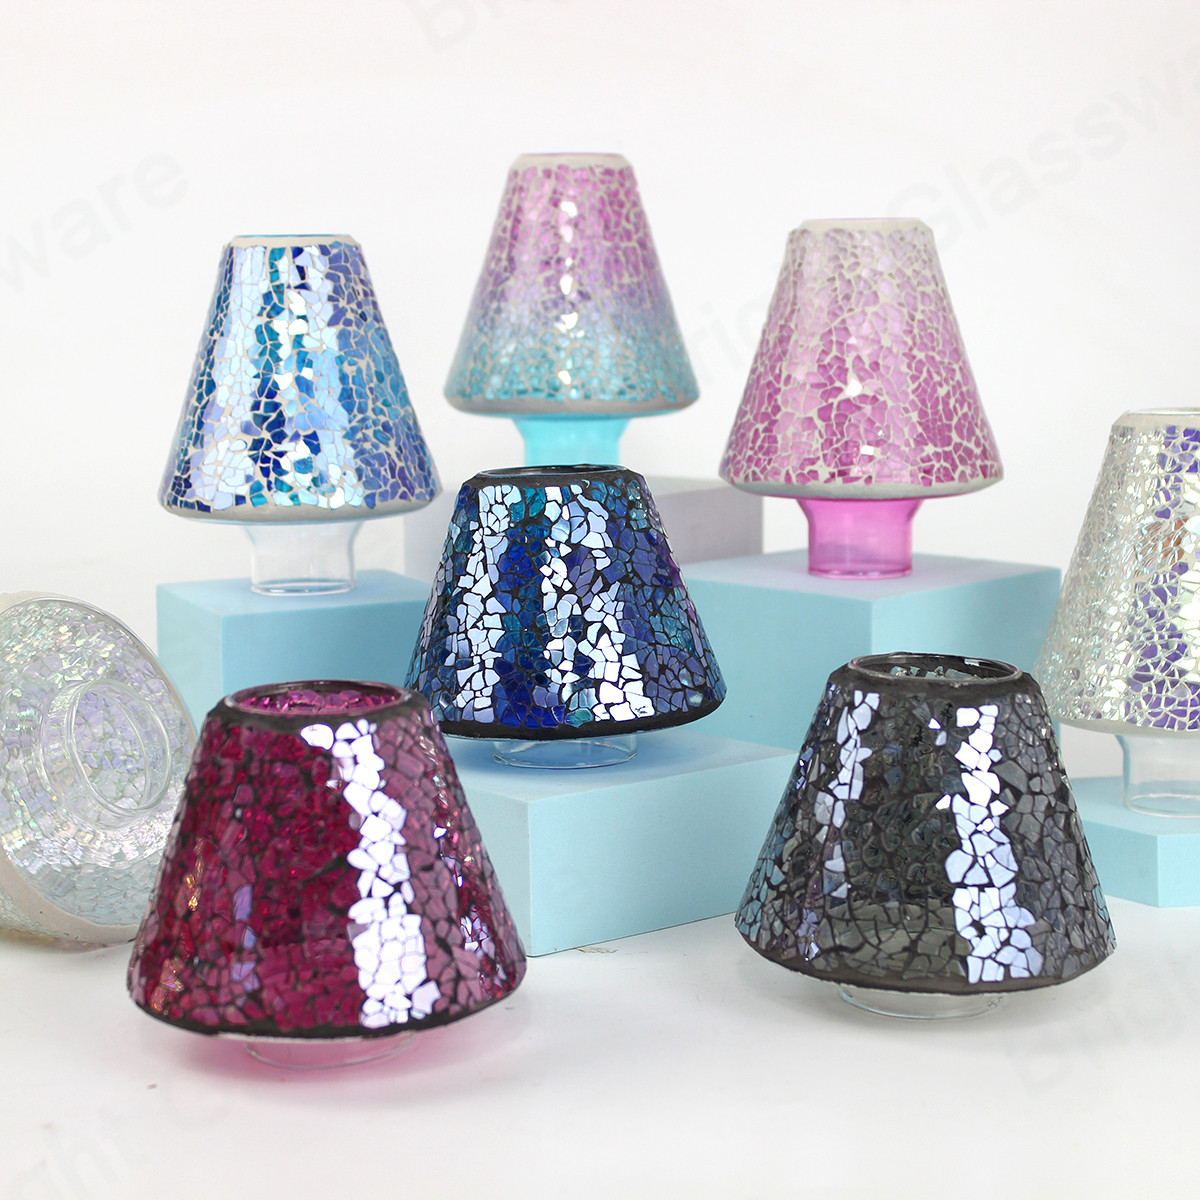 colorful stained glass mosaic lampshade for outdoor garden home decoration